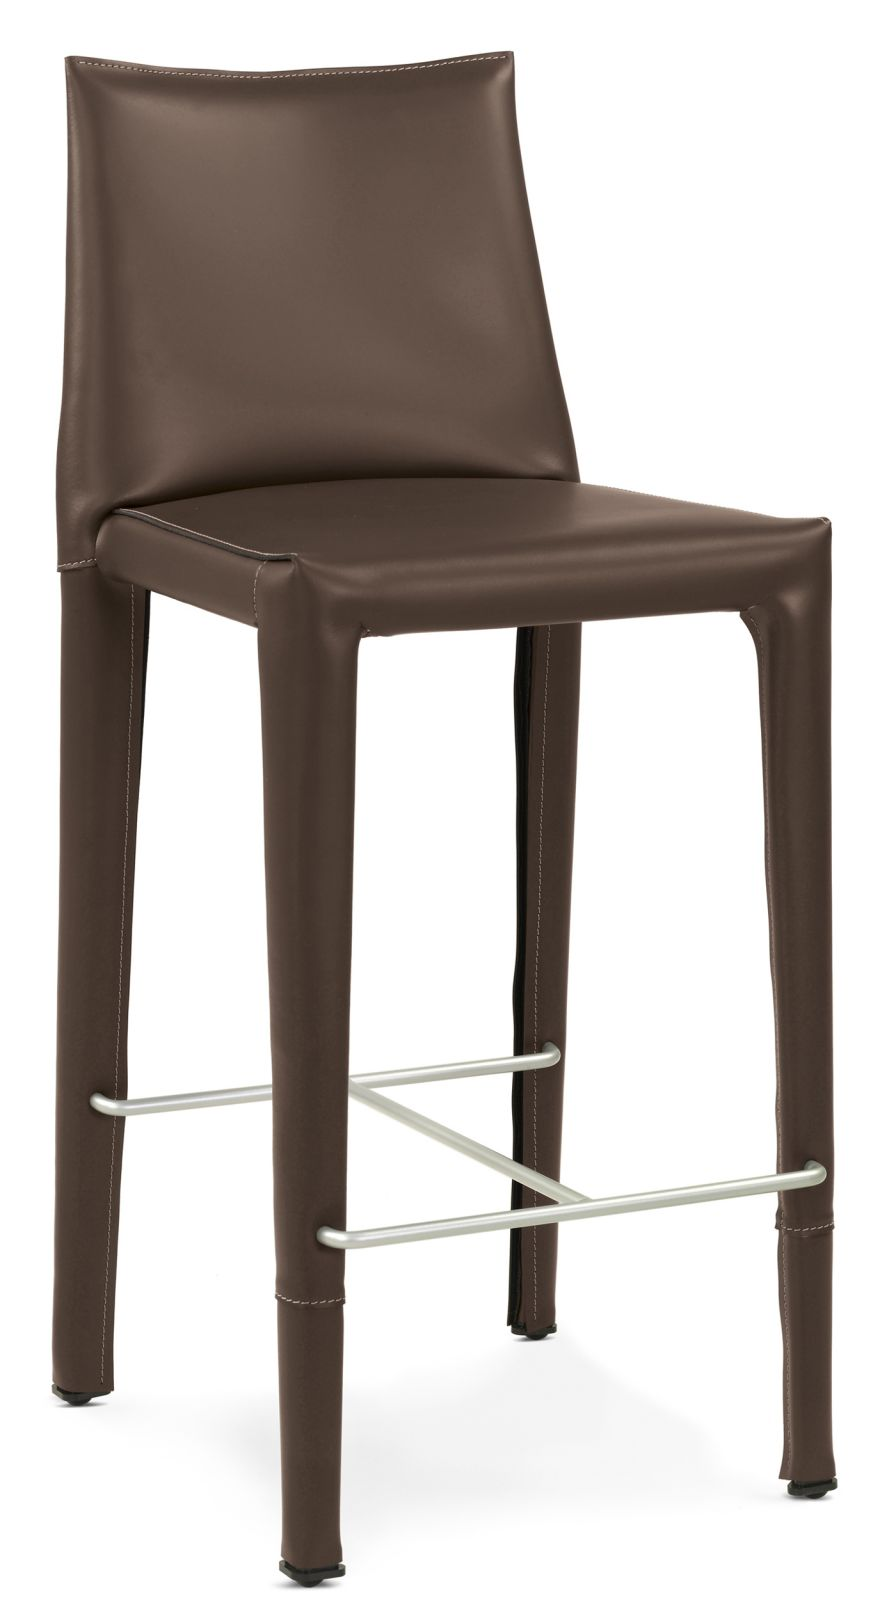 modern-bar-stools-Italian-furniture-large (16).jpg